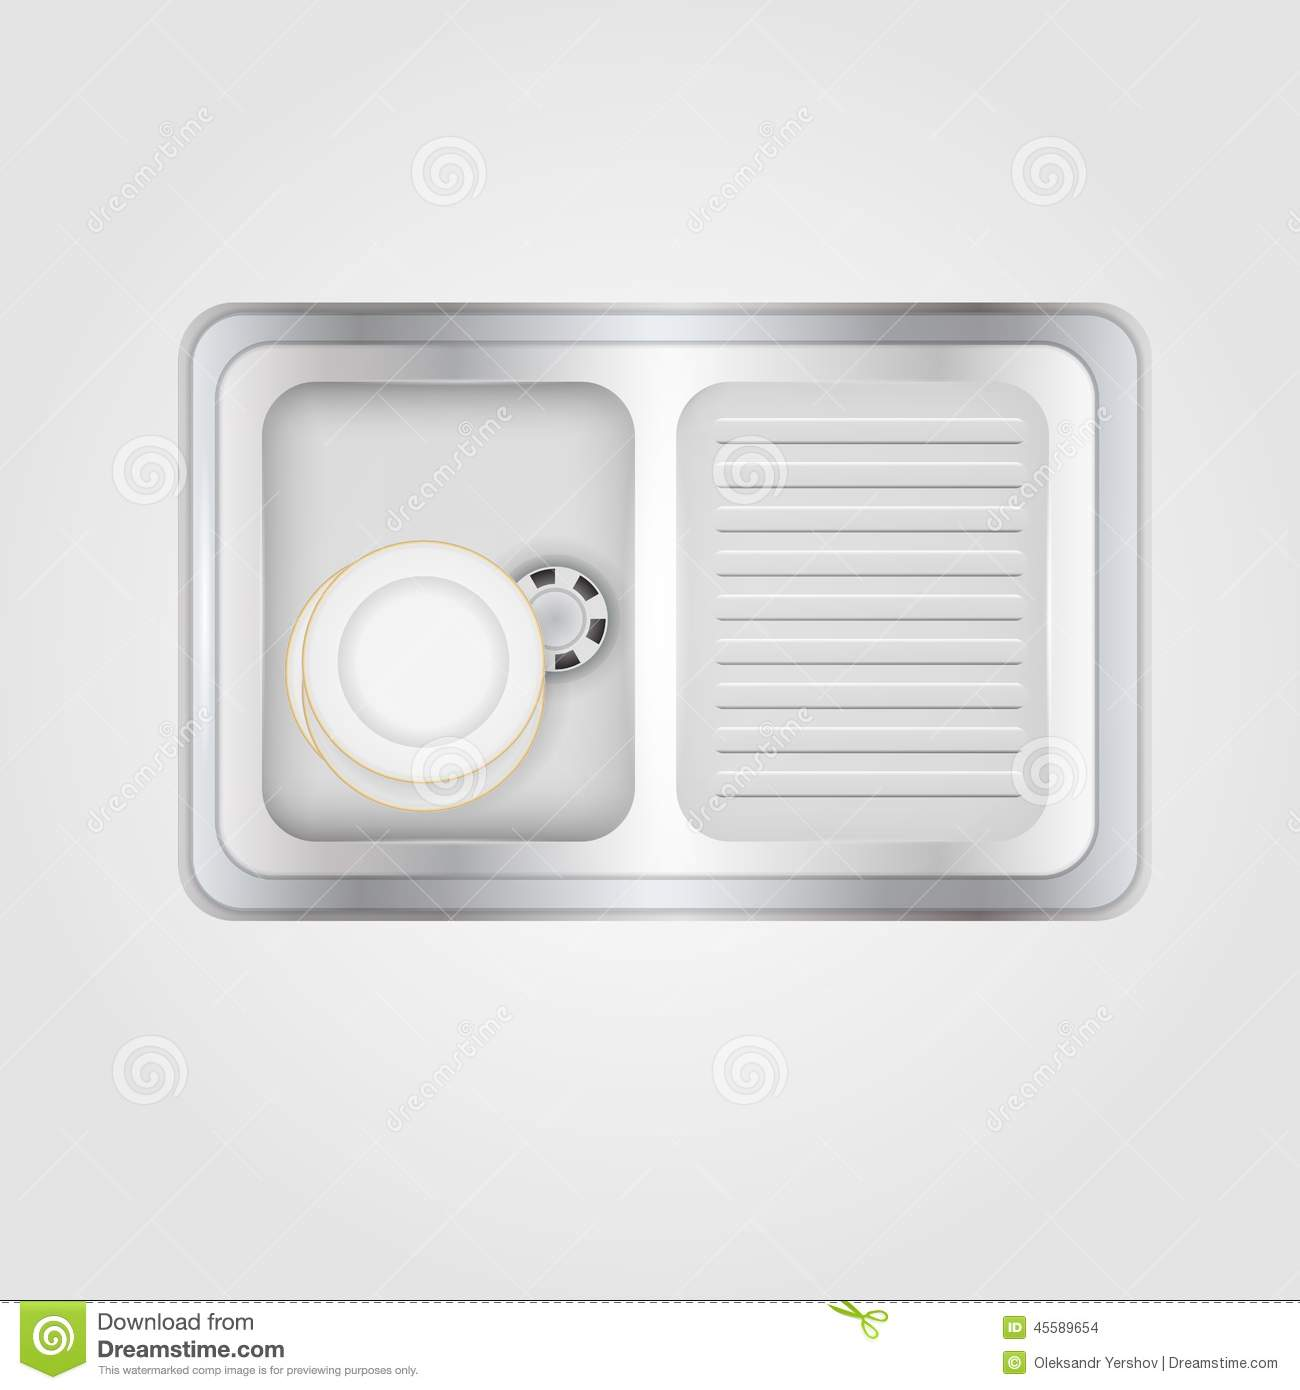 kitchen sink clipart black and white. royalty-free vector. download illustration of kitchen sink clipart black and white